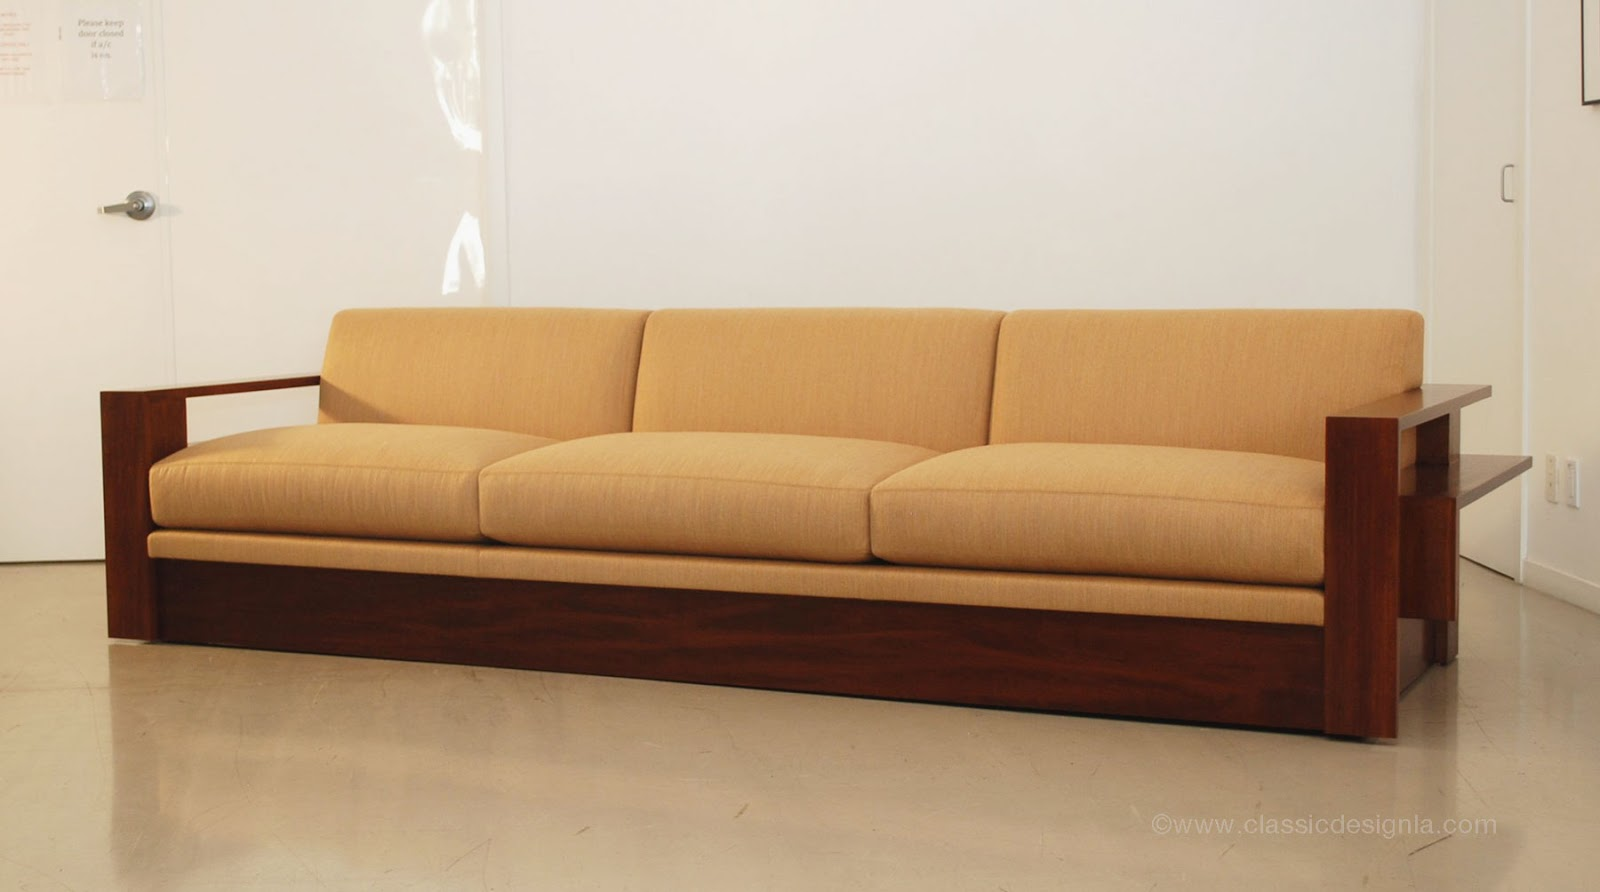 Classic design custom wood frame sofa - Wooden corner sofa designs ...